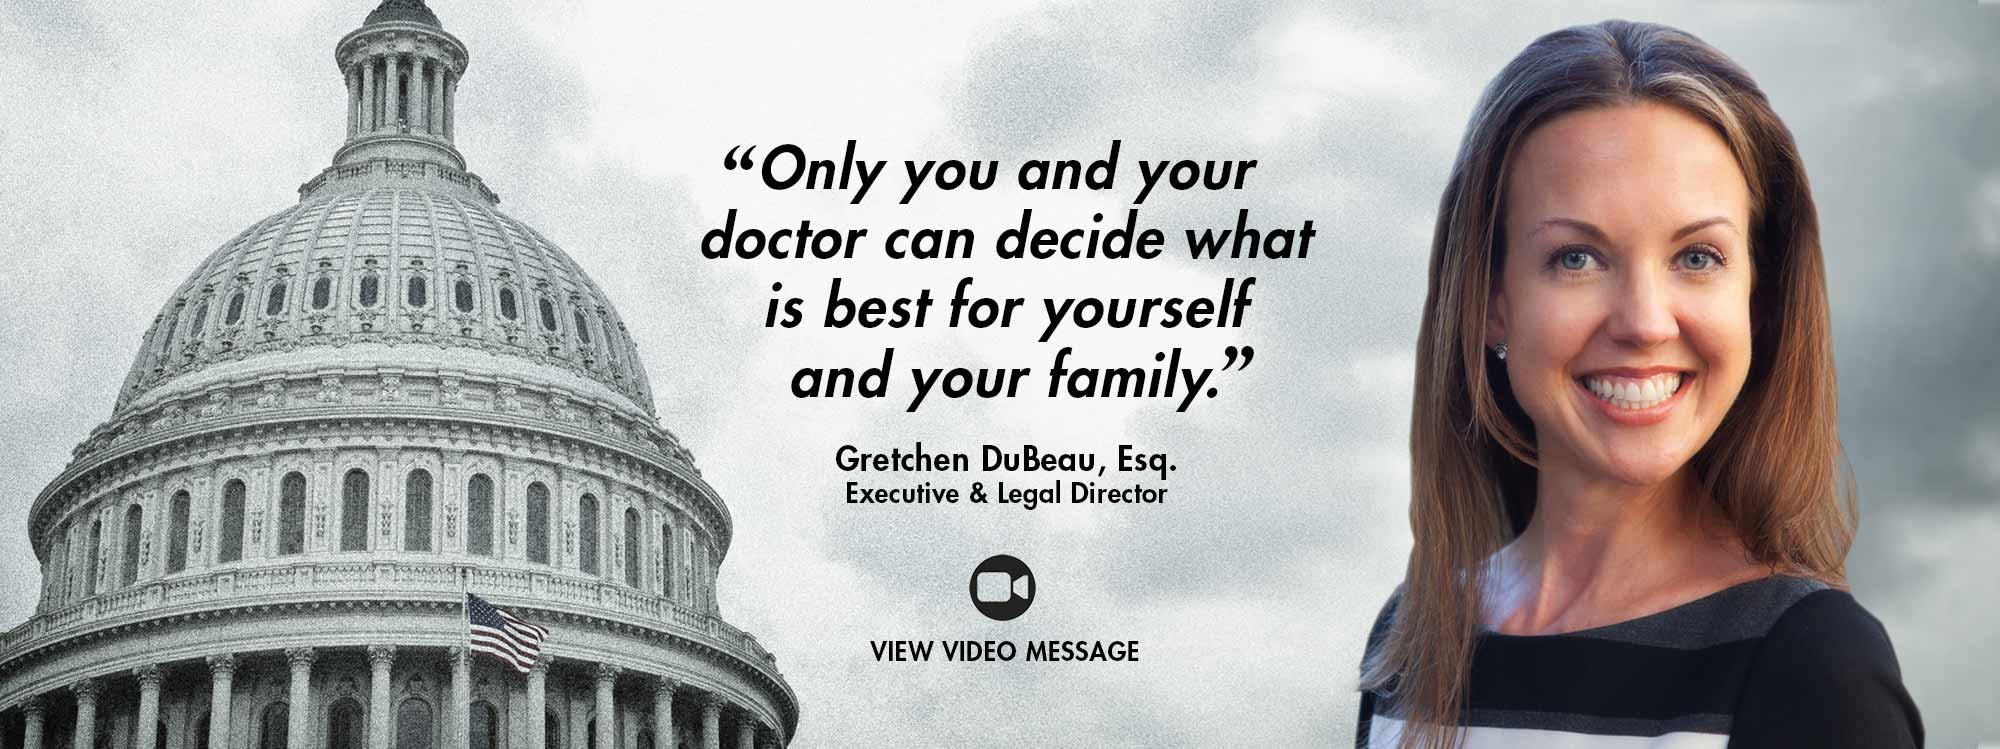 Only you and your doctor can decide what is best for yourself and your family.